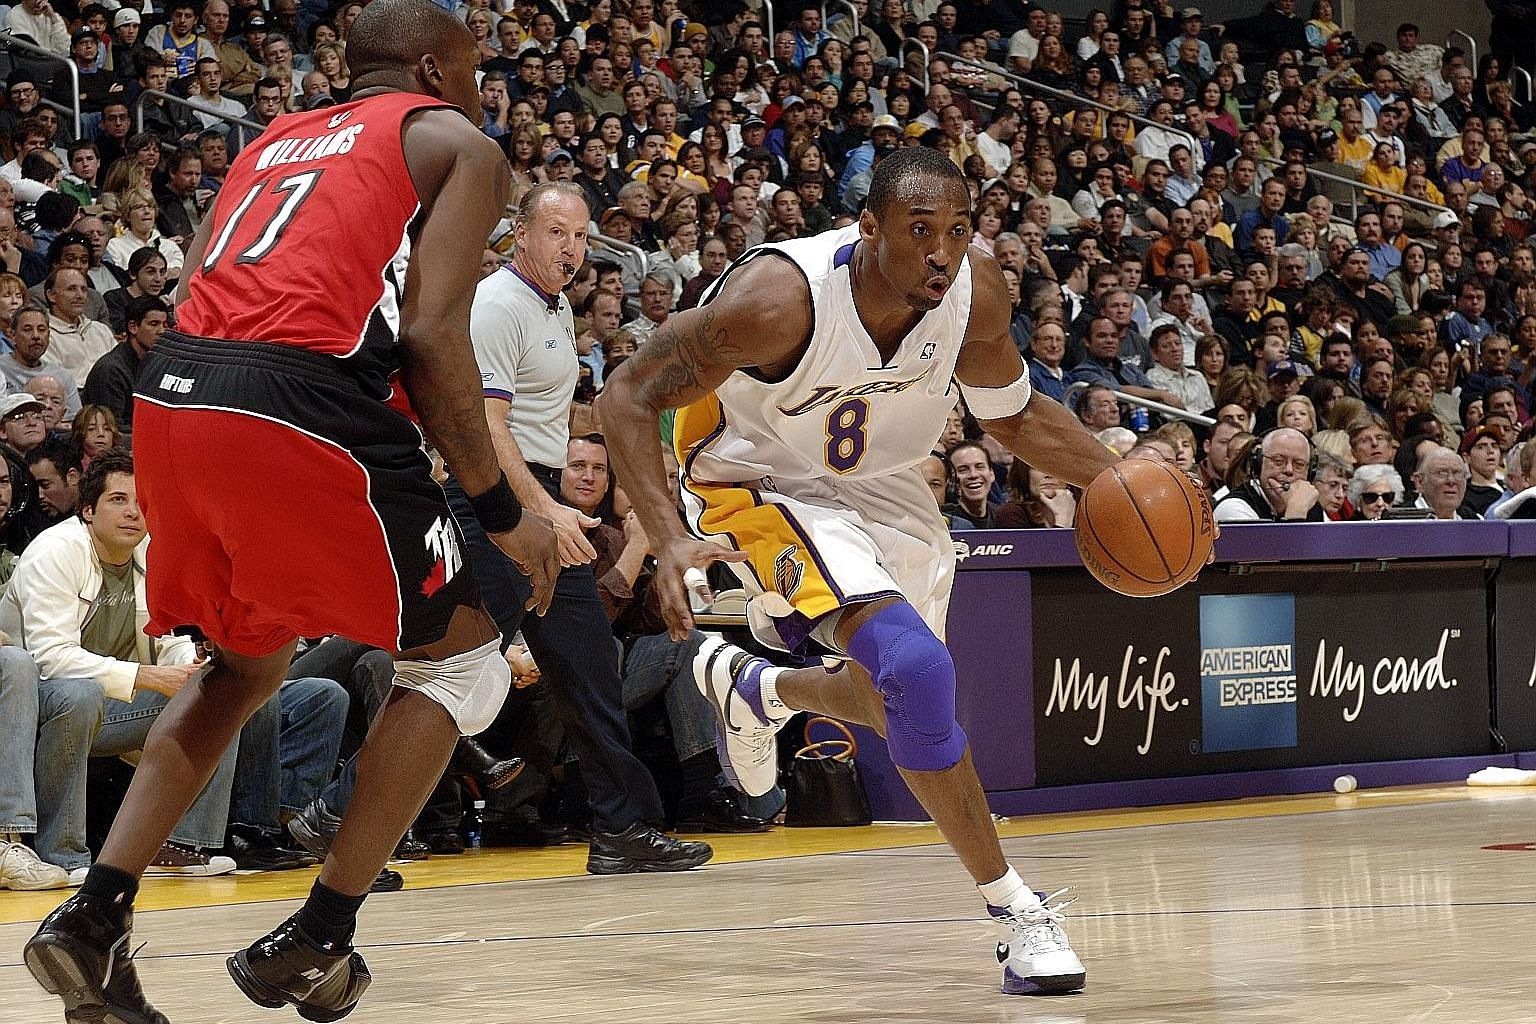 Kobe Bryant of the Los Angeles Lakers battling his way to an 81-point performance against the Toronto Raptors on Jan 22, 2006. The Lakers won 122-104 and Bryant's stunning display was behind only Wilt Chamberlain's 100-point performance. Just over 14